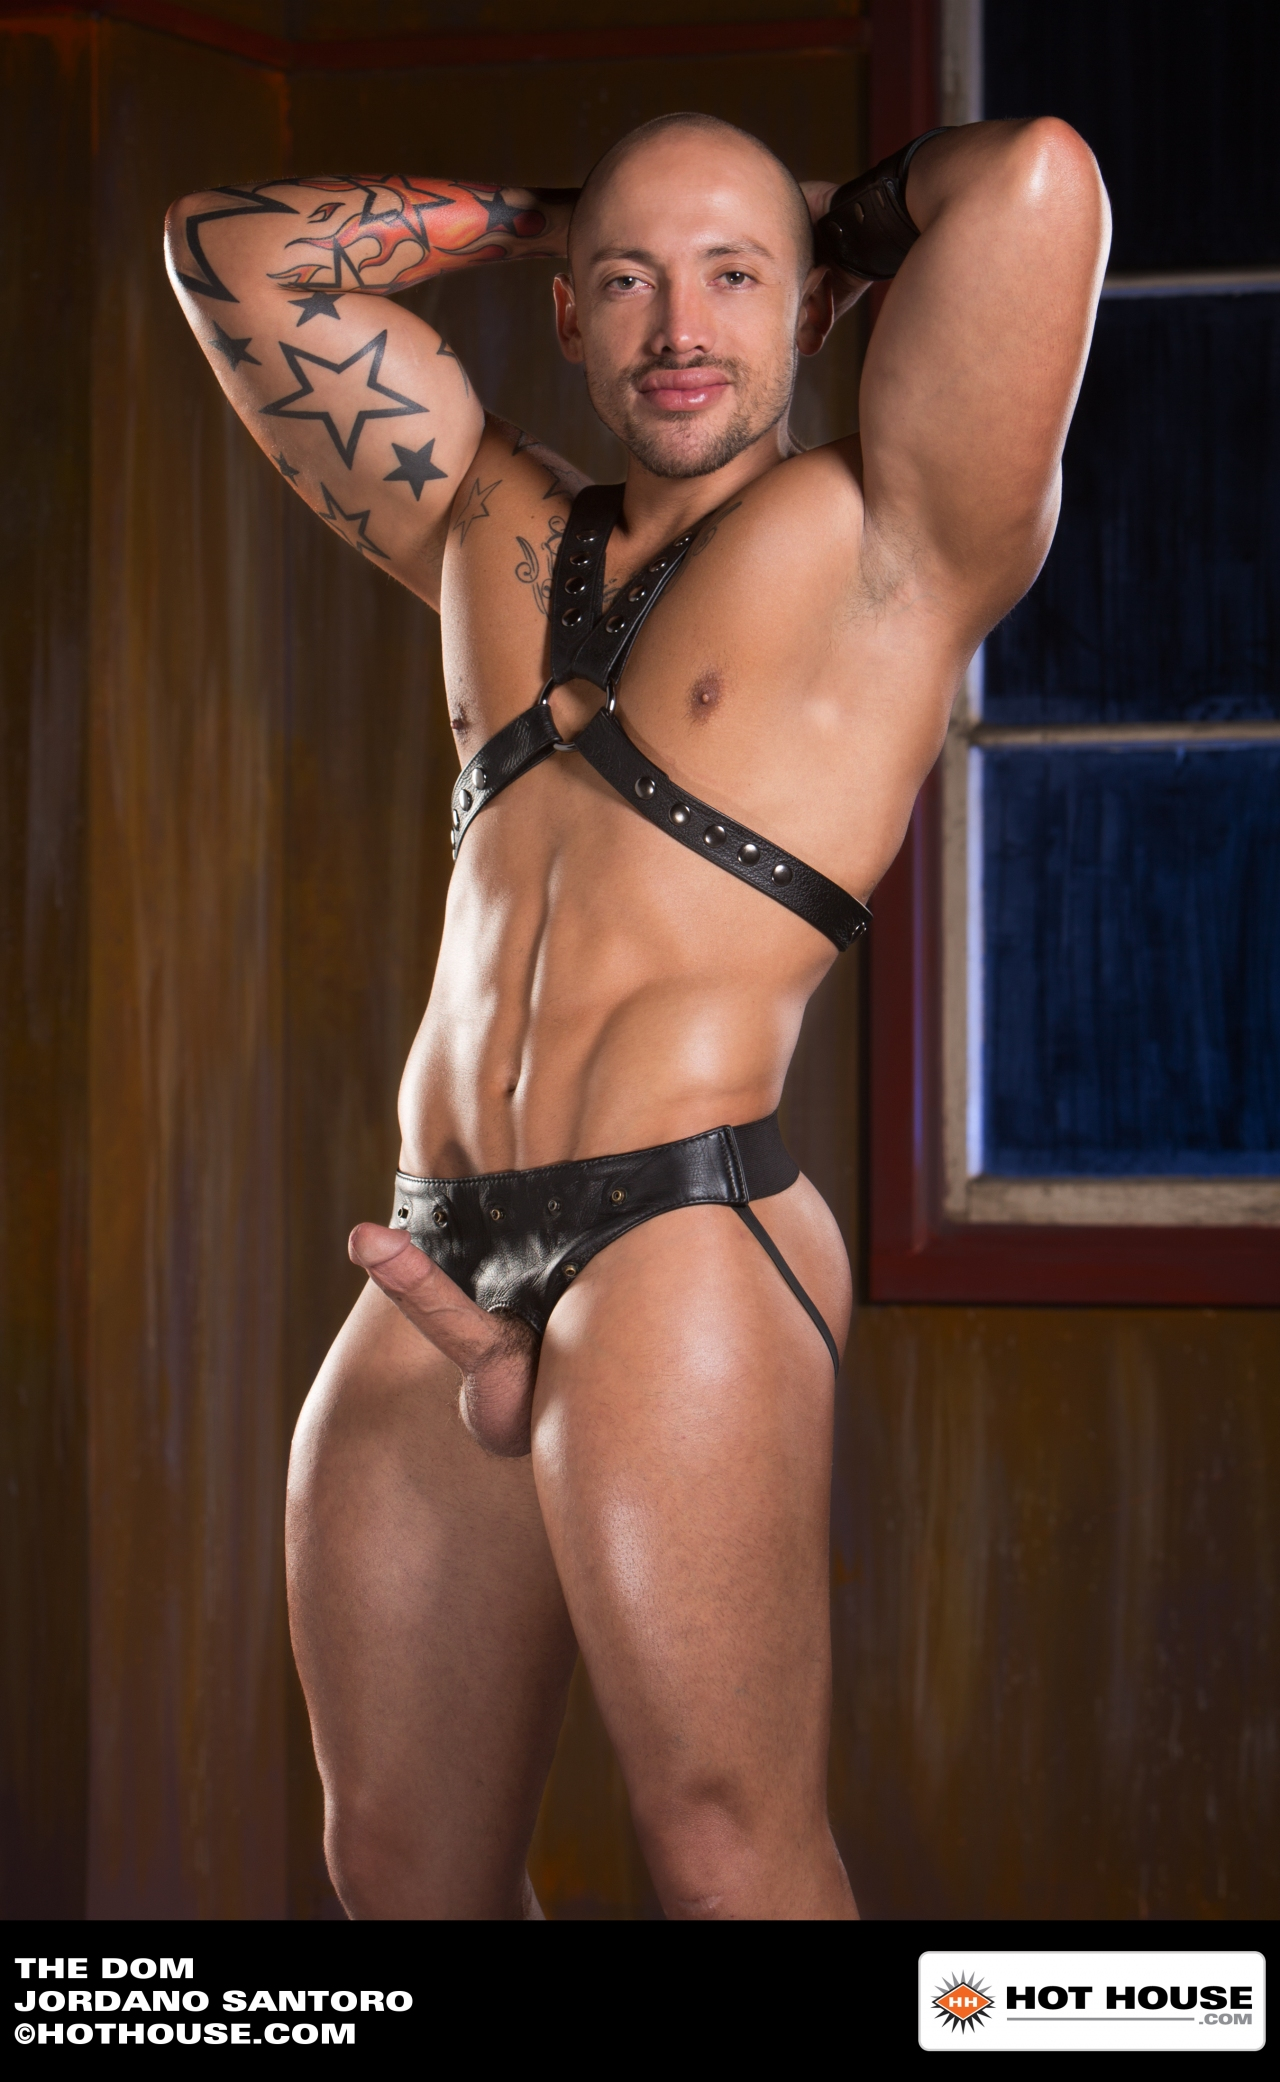 Hot House – The Dom (Scene 5)